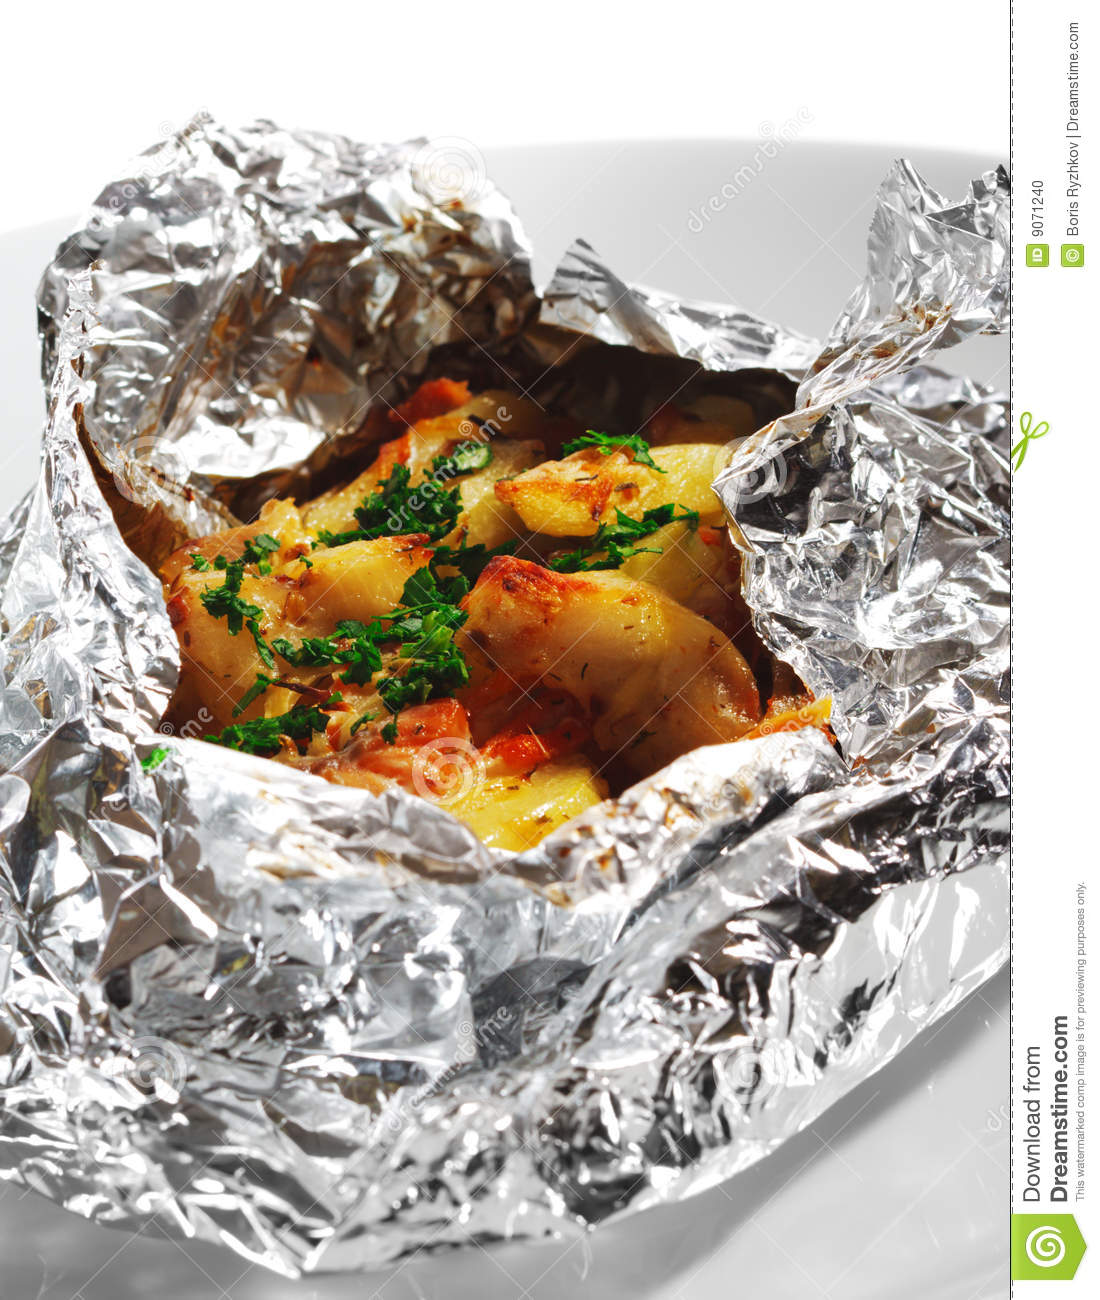 Baked Fish In Foil Stock Photo Image 9071240